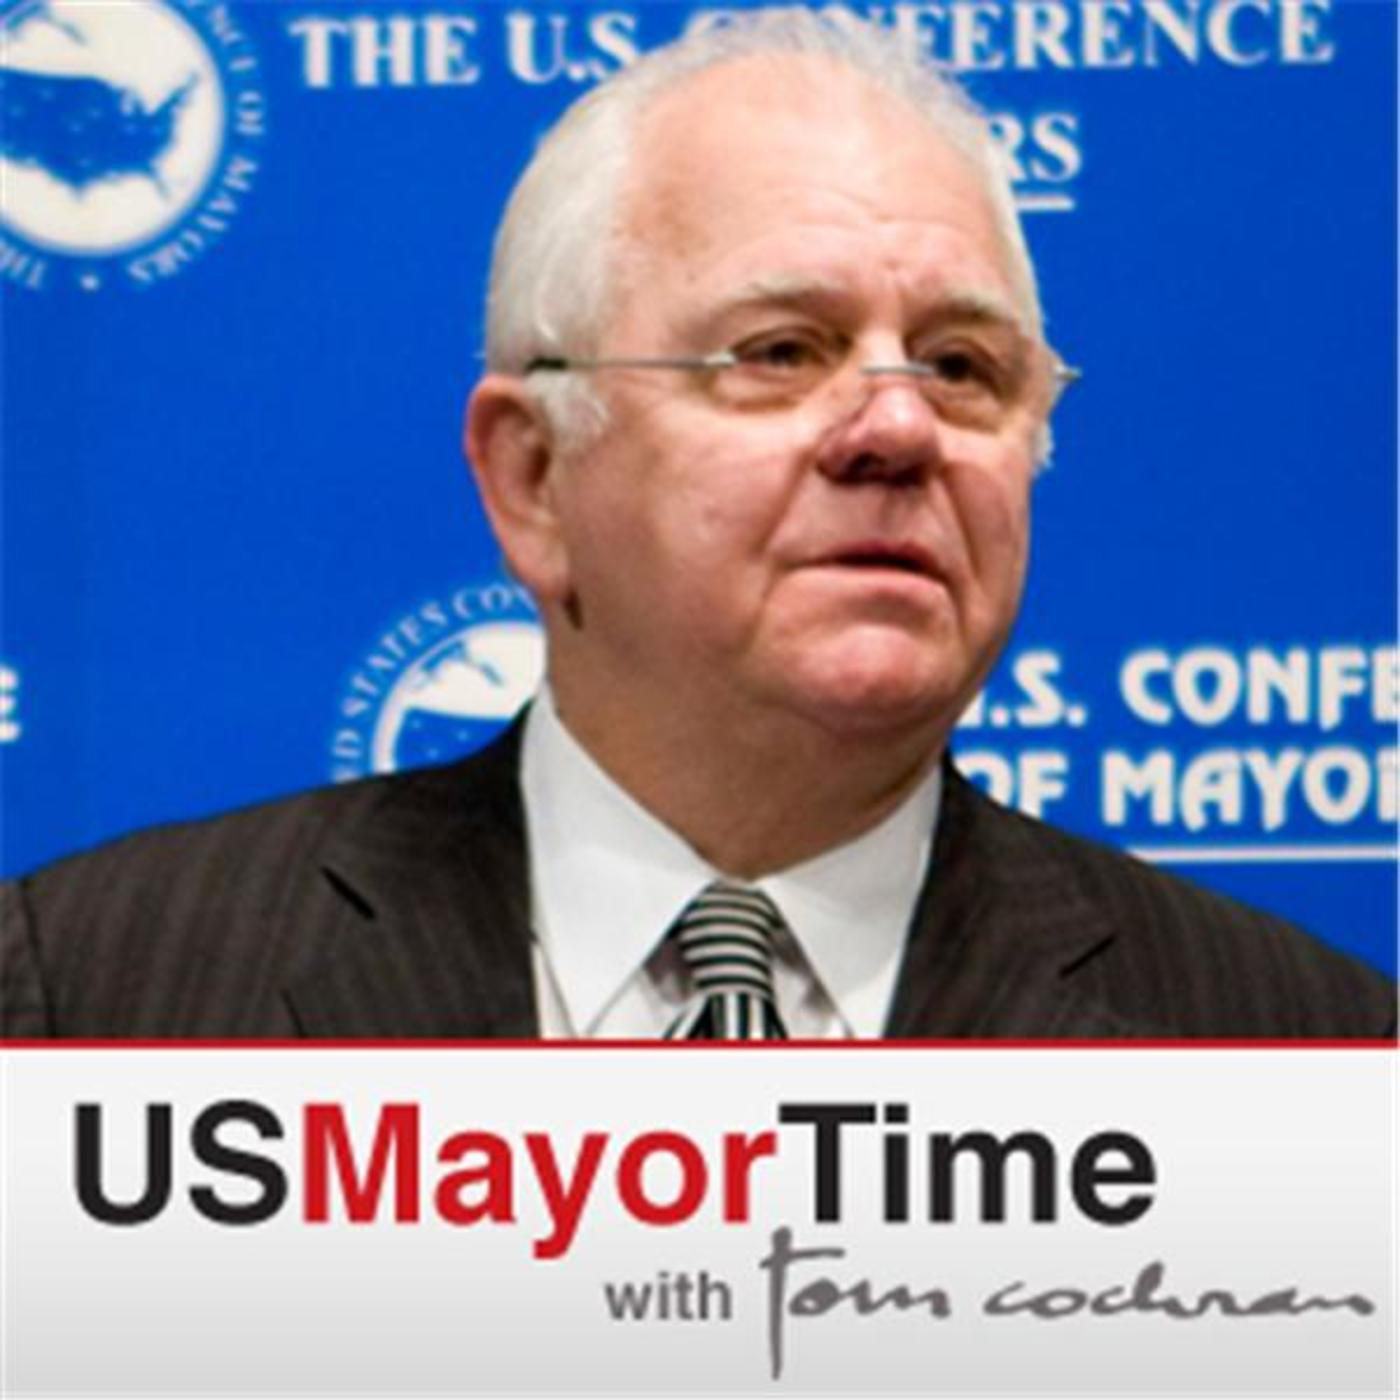 USMayorTime with Tom Cochran